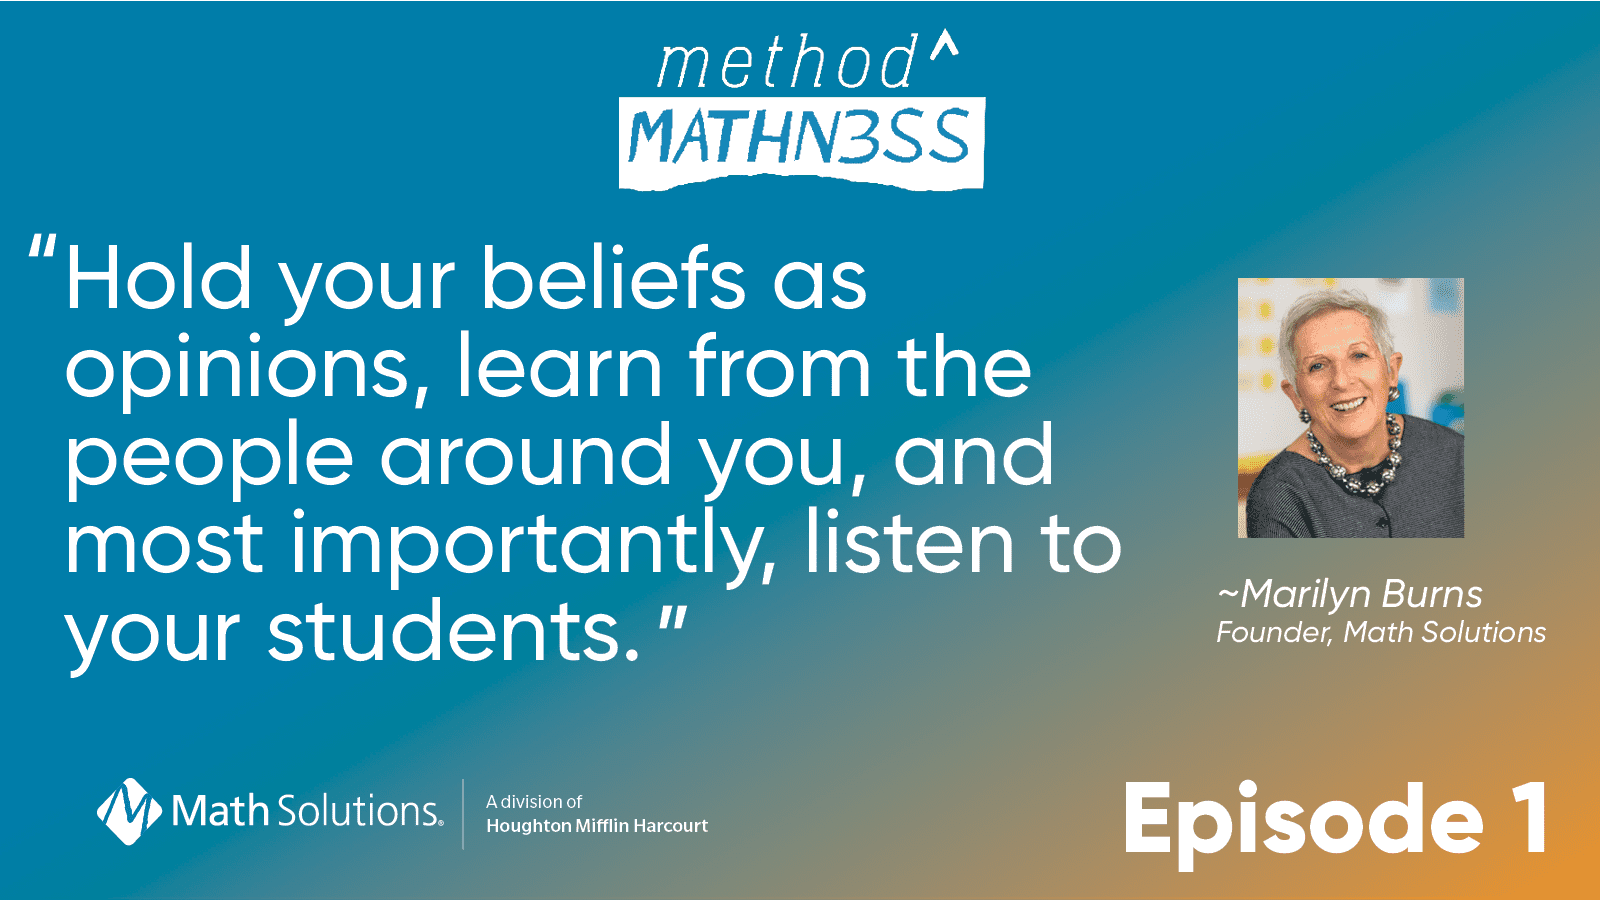 Hold your beliefs as opinions, learn from the people around you, and most importantly, listen to your students.